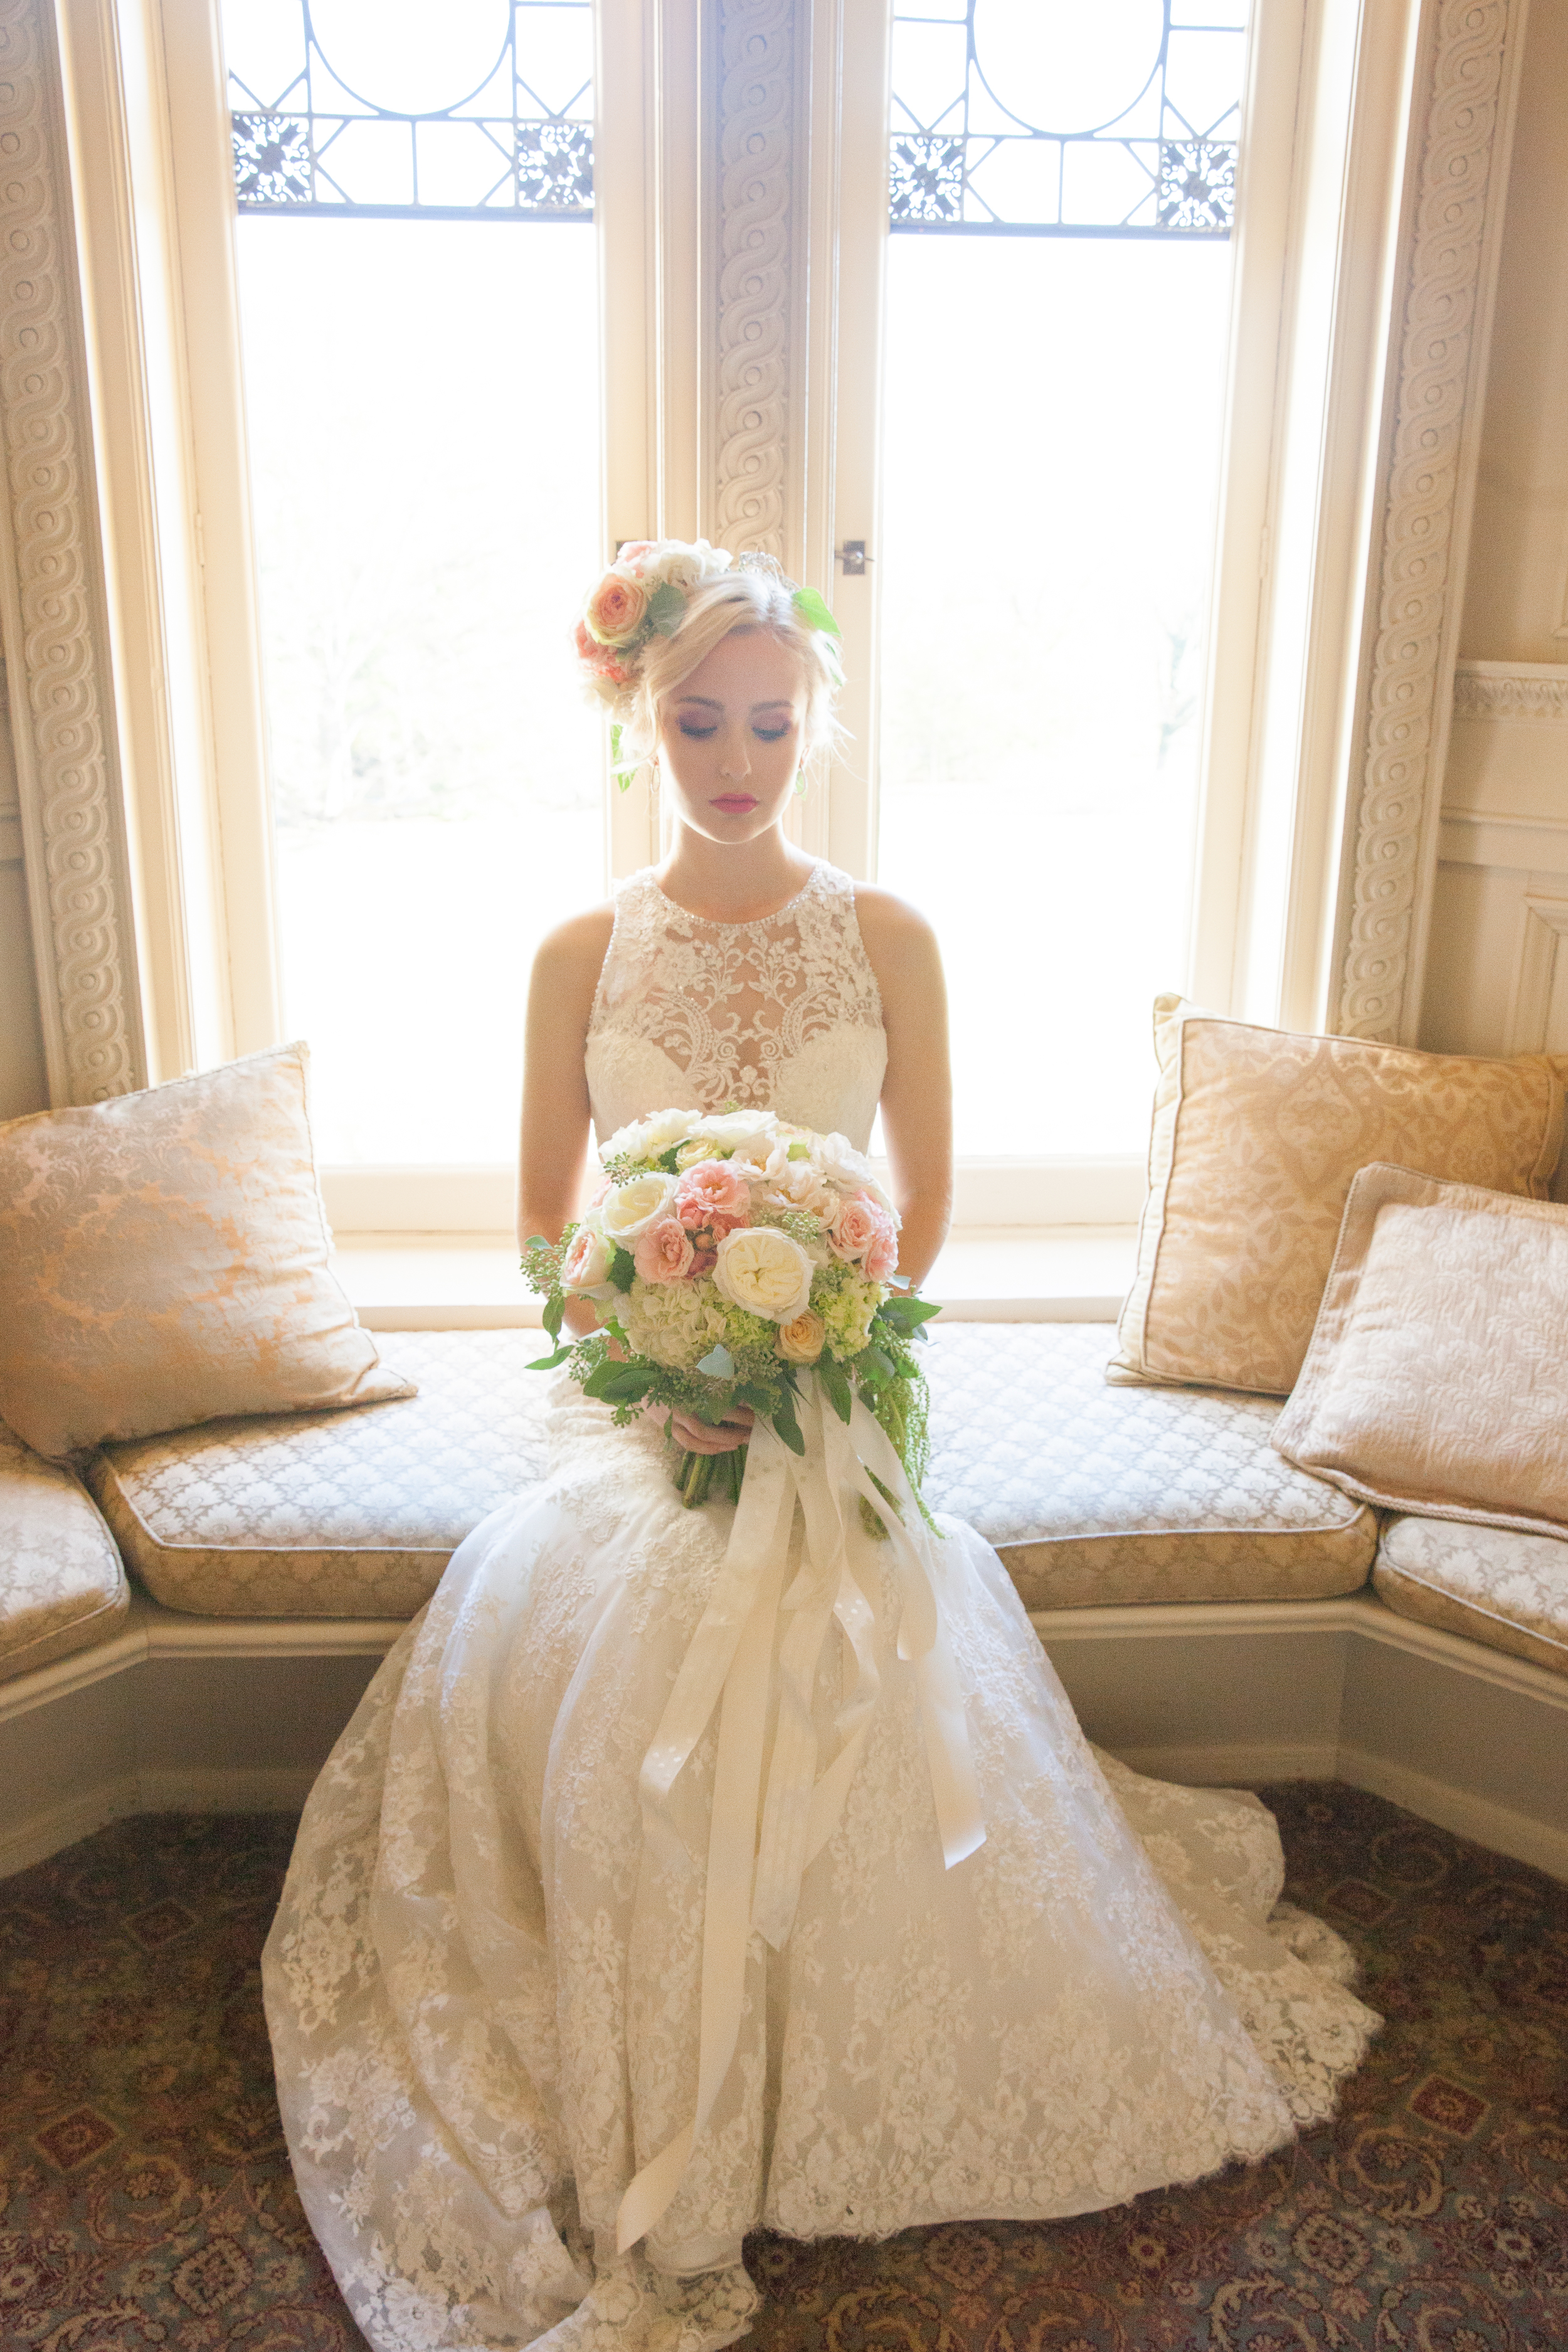 Nancy Caroline Bridal Styling - nancycaroline.com